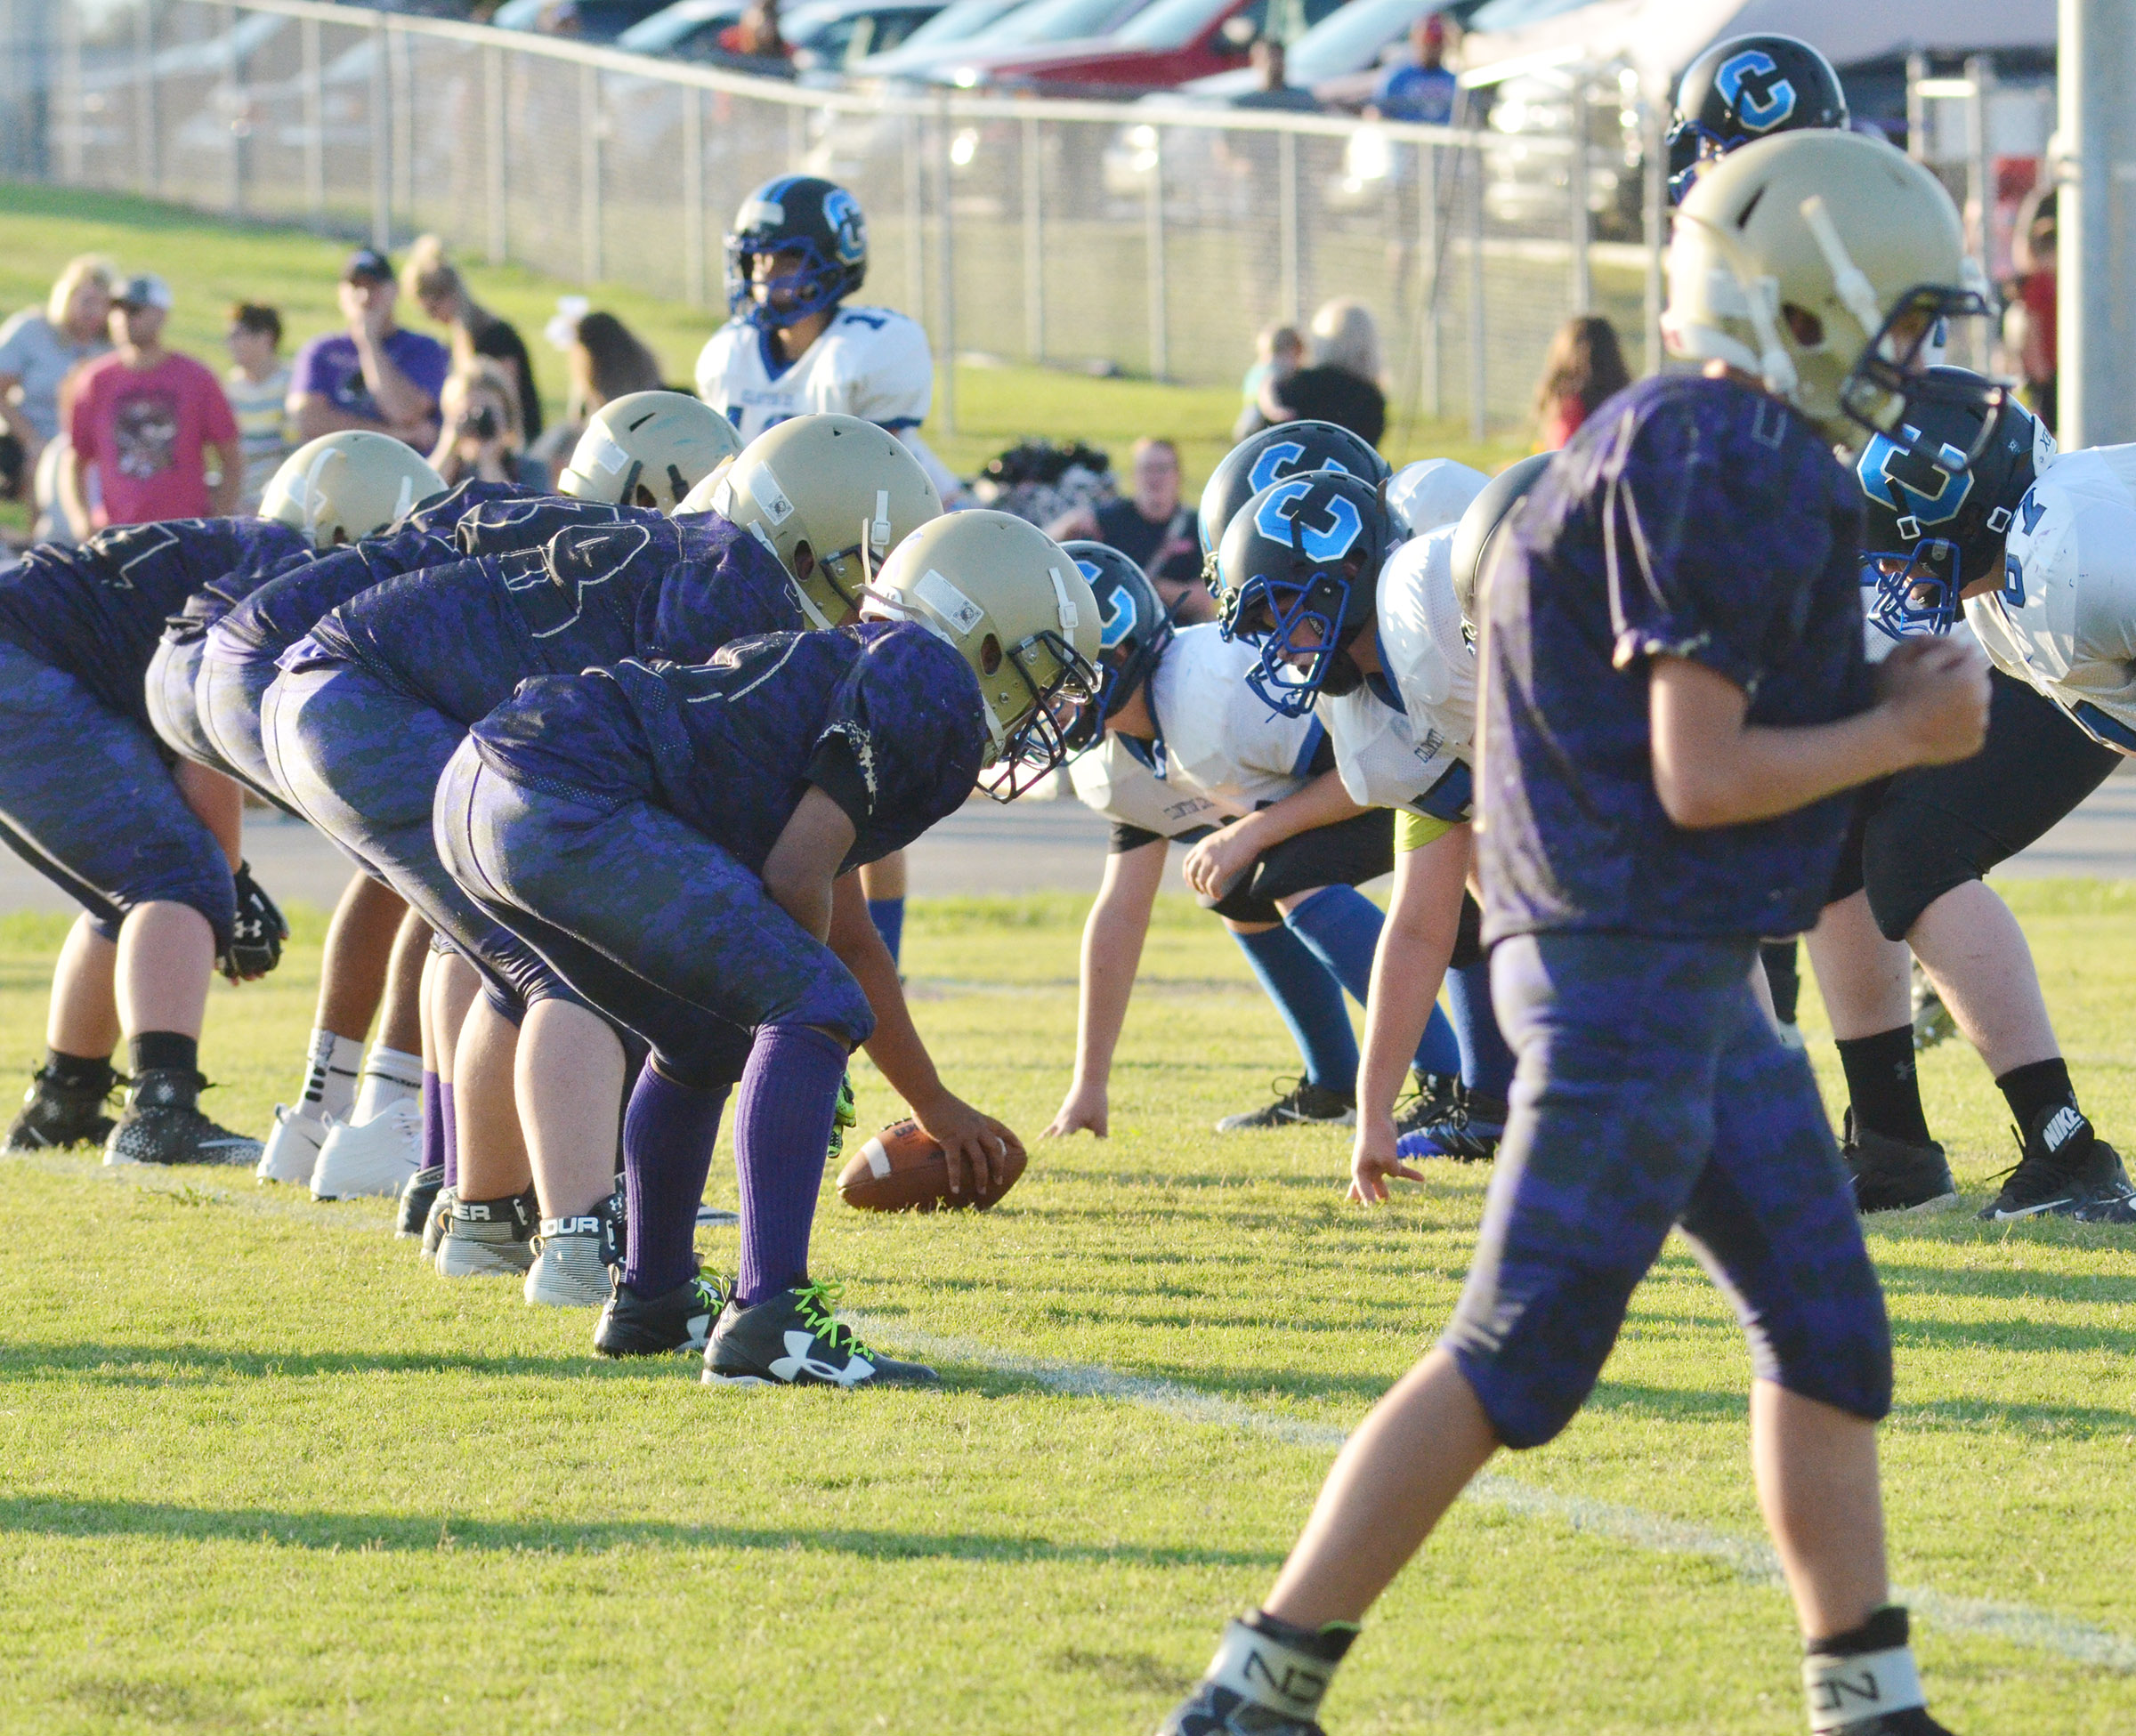 CMS offensive linemen get ready for a play.